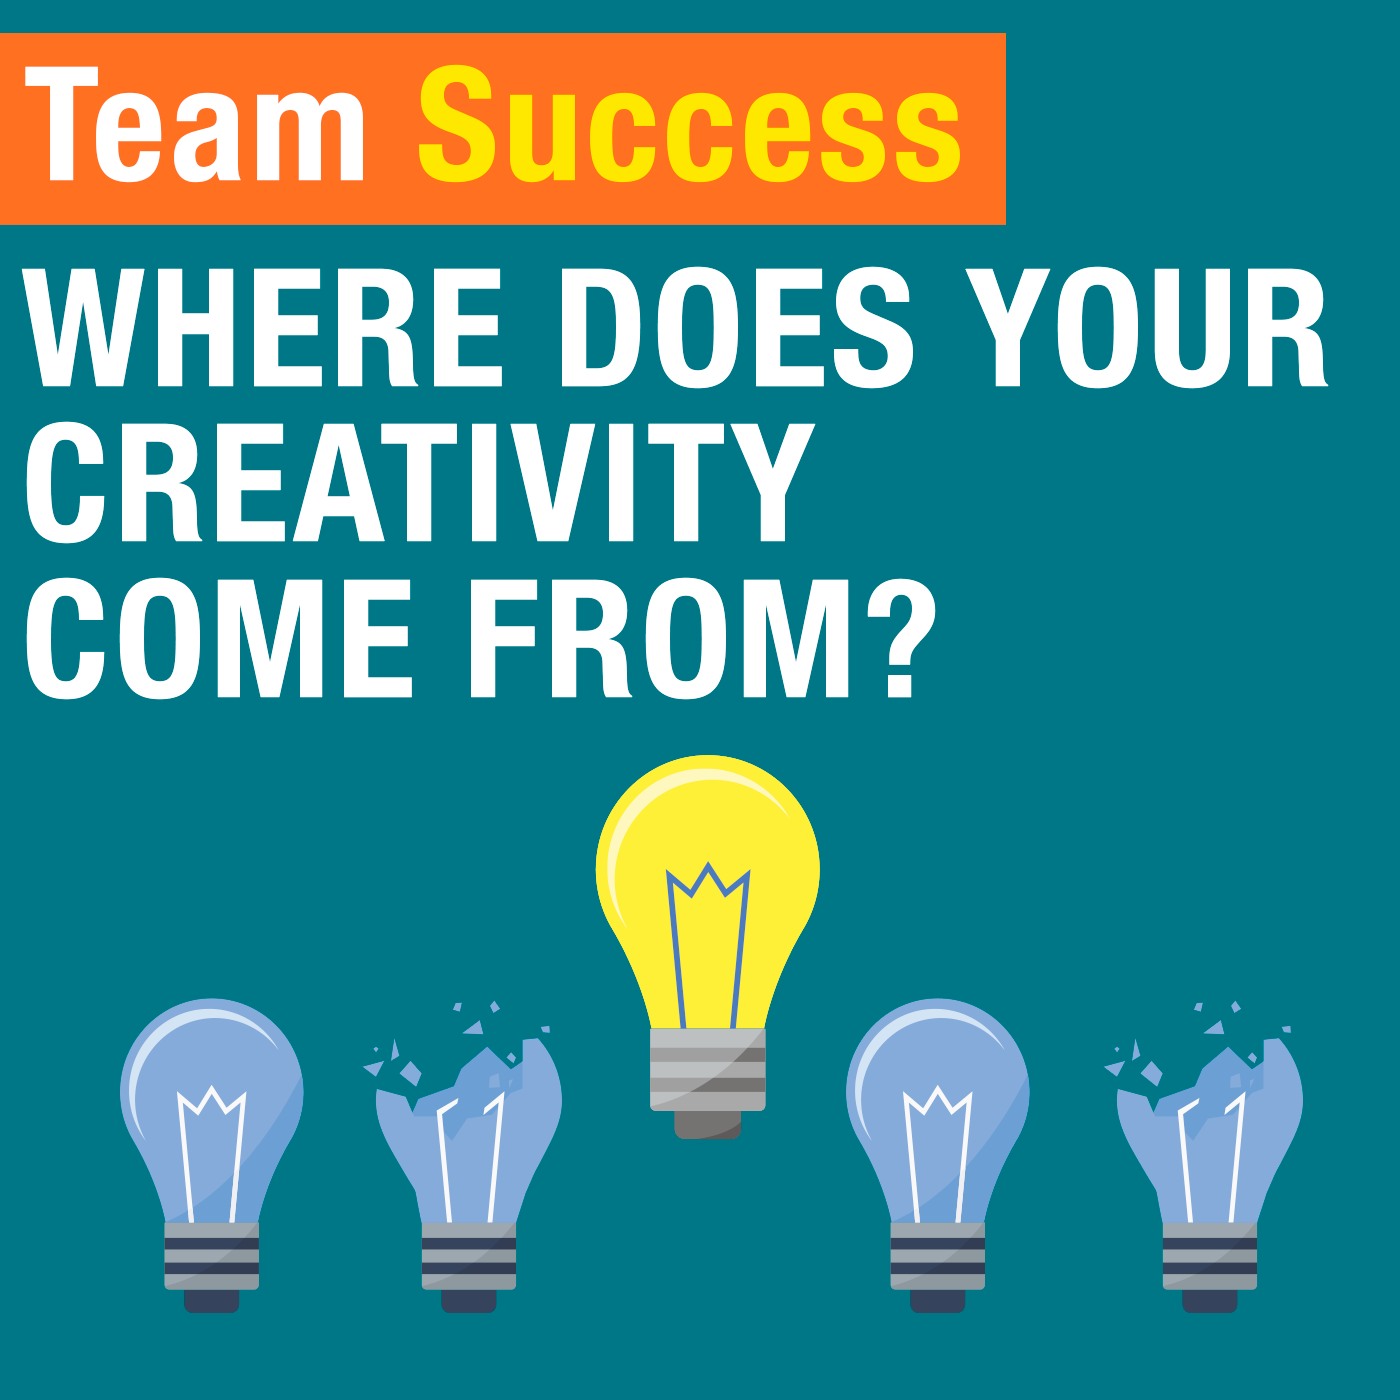 Where Does Your Creativity Come From?